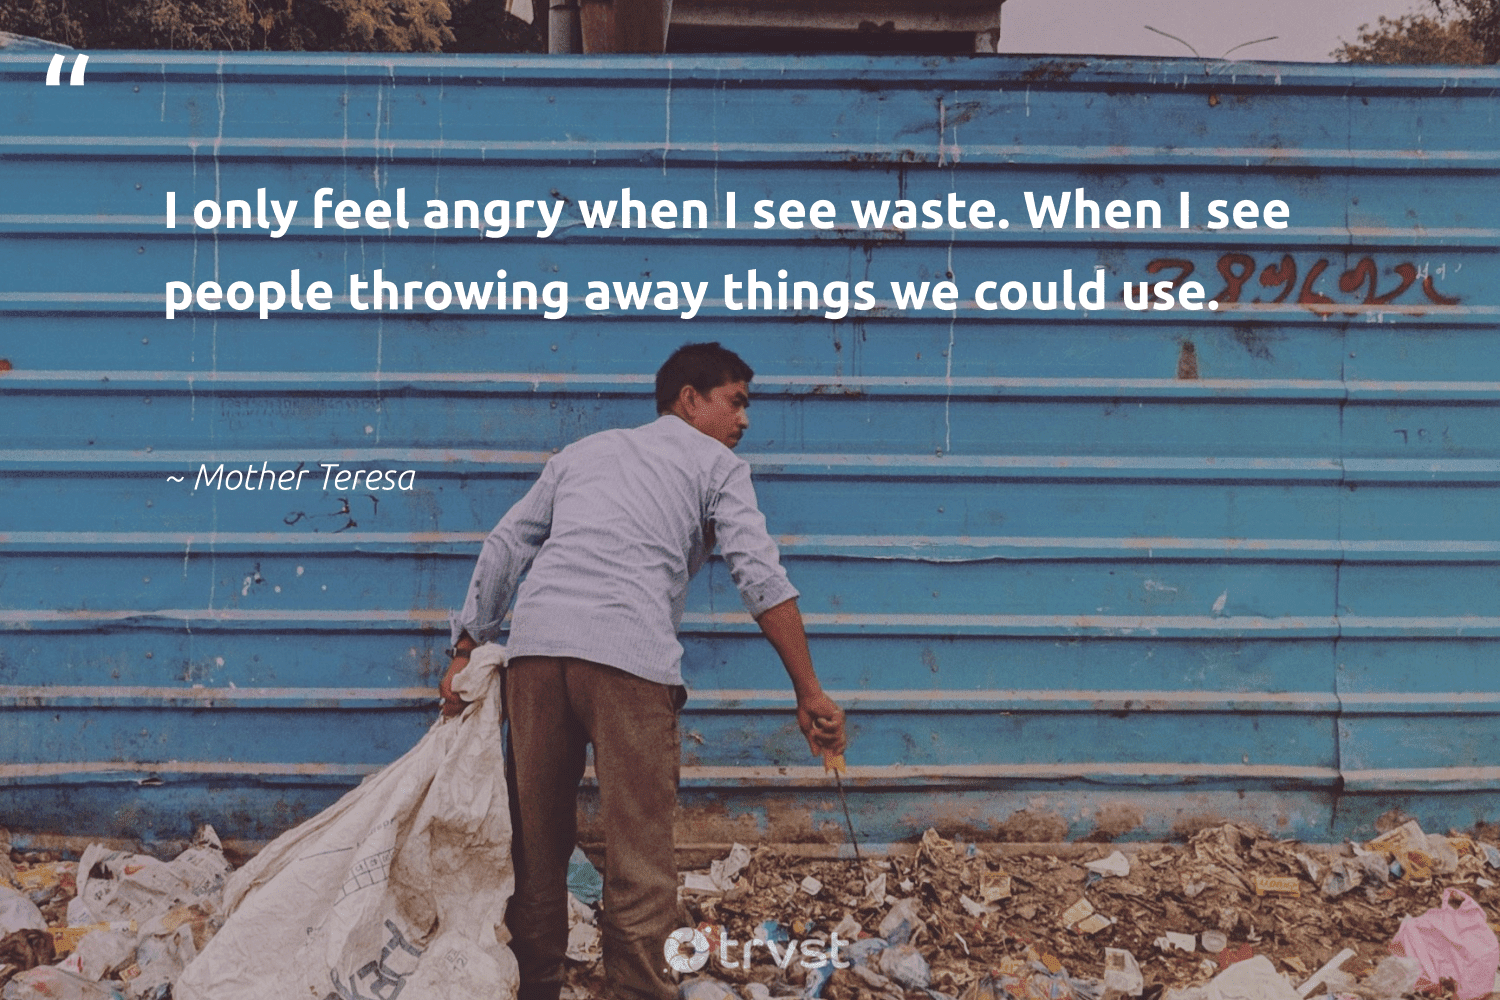 """""""I only feel angry when I see waste. When I see people throwing away things we could use.""""  - Mother Teresa #trvst #quotes #waste #sustainableliving #socialimpact #waronwaste #bethechange #thinkgreen #dosomething #gogreen #socialchange #changeahabit"""